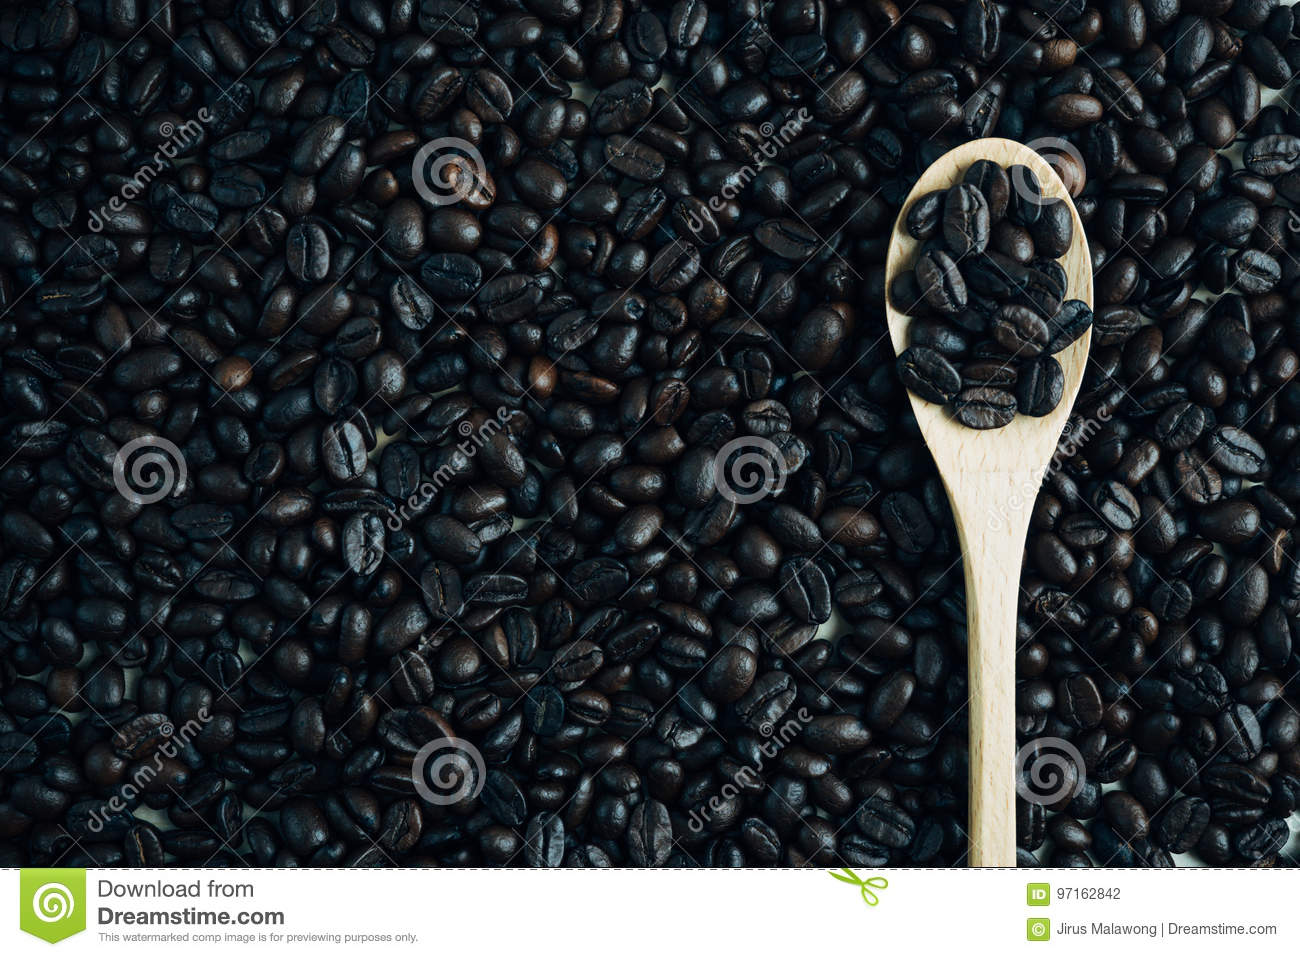 Roasted coffee bean background and texture with wooden spoon, co